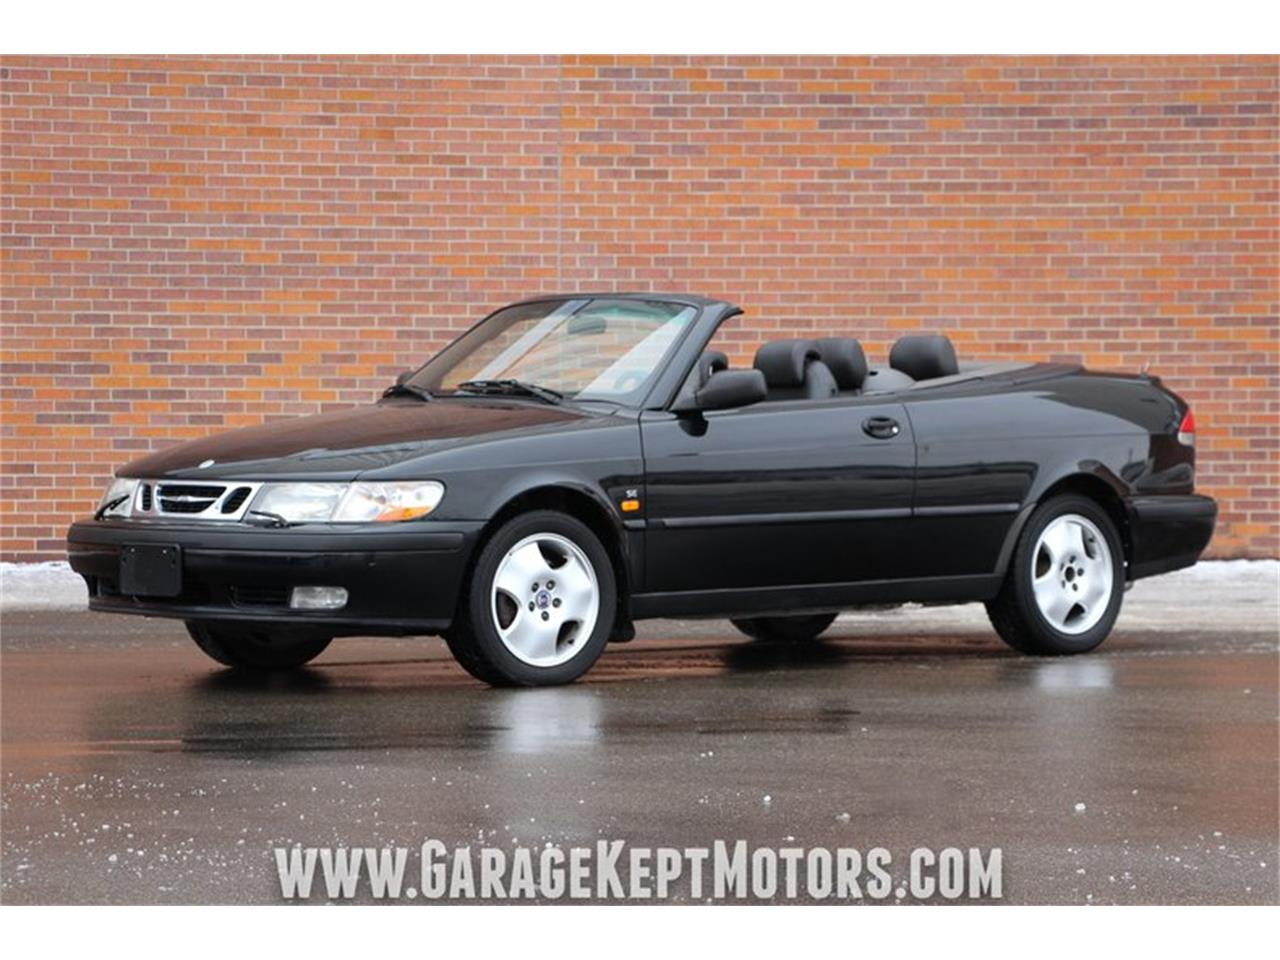 1999 Saab 9-3 for sale in Grand Rapids, MI